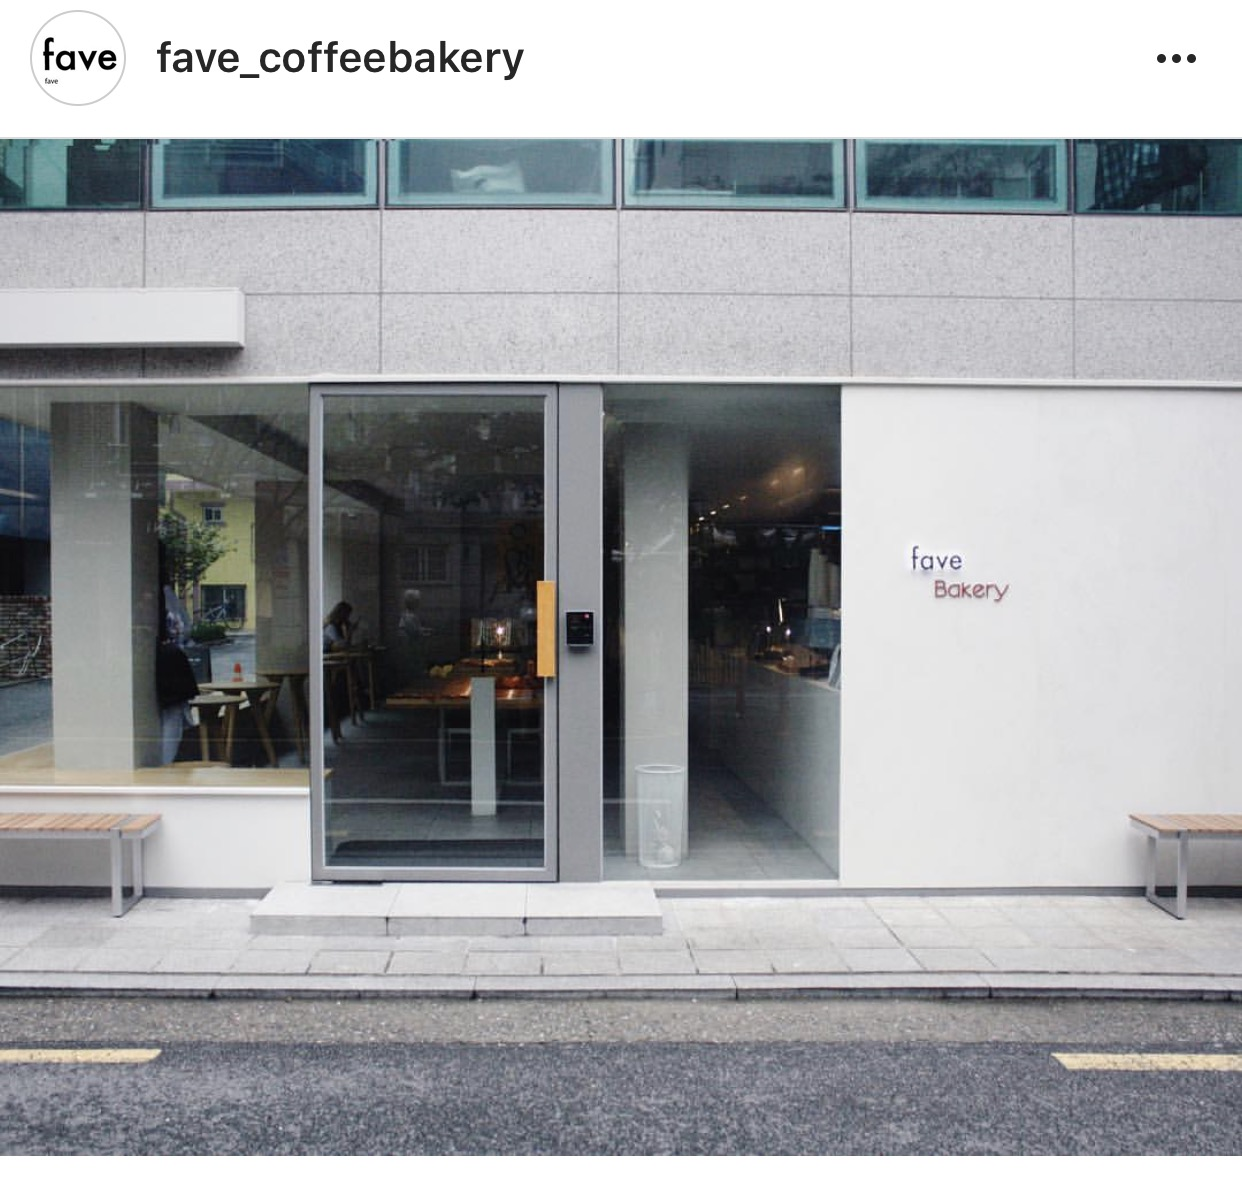 出典:https://www.instagram.com/fave_coffeebakery/